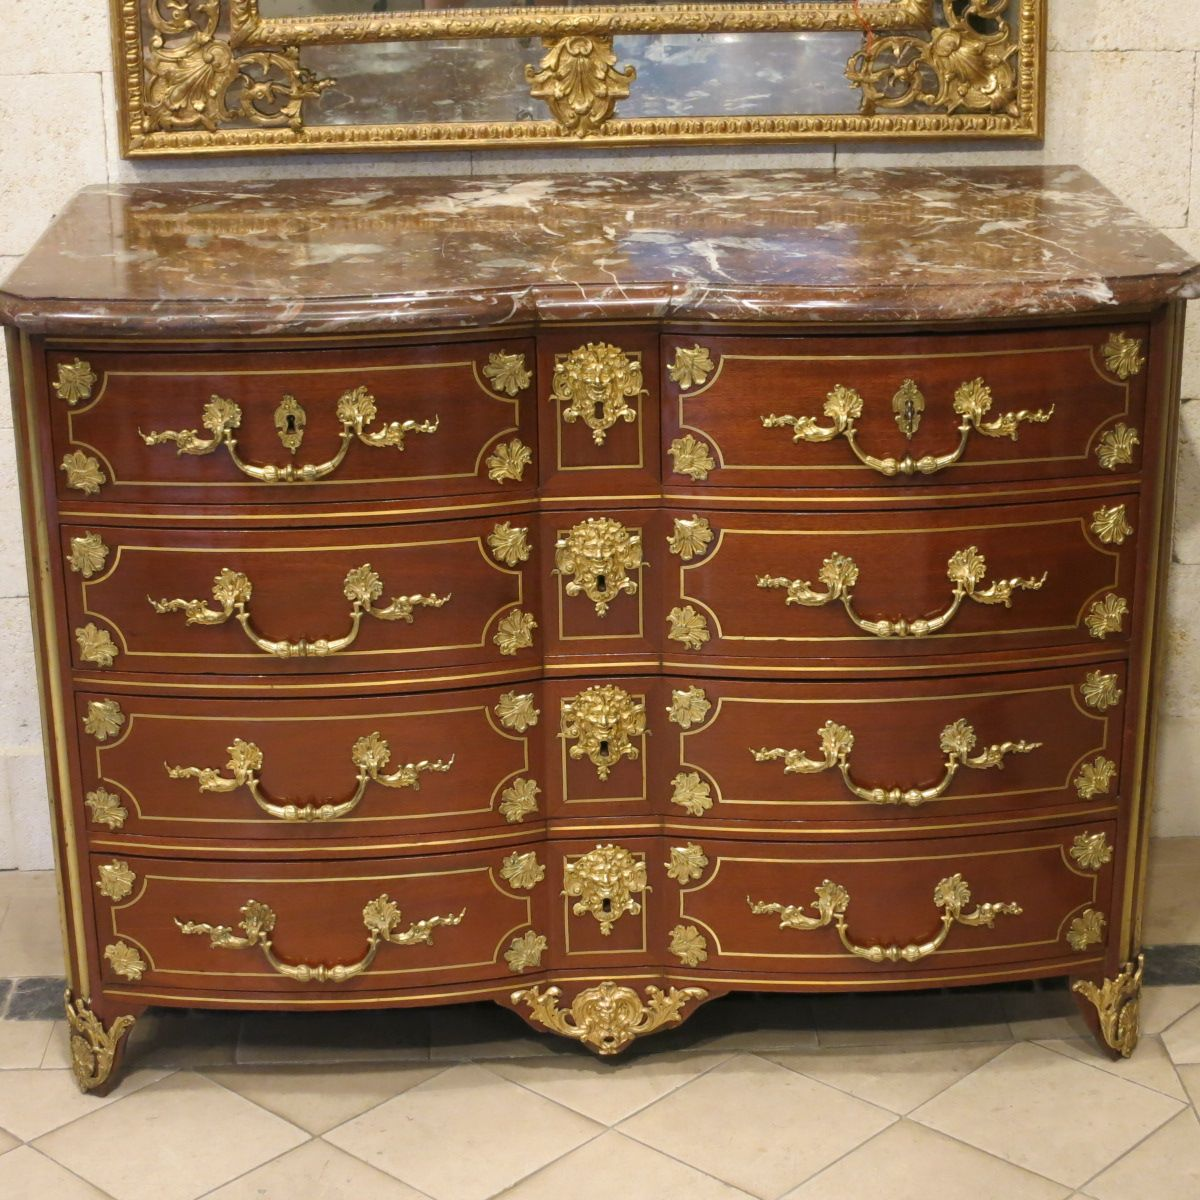 #Commode in #amaranth wood with four rows of drawers, gilded #bronze ornamentation and red breccia #marble top. #18thcentury. For sale on #Proantic by Laurent Chalvignac.